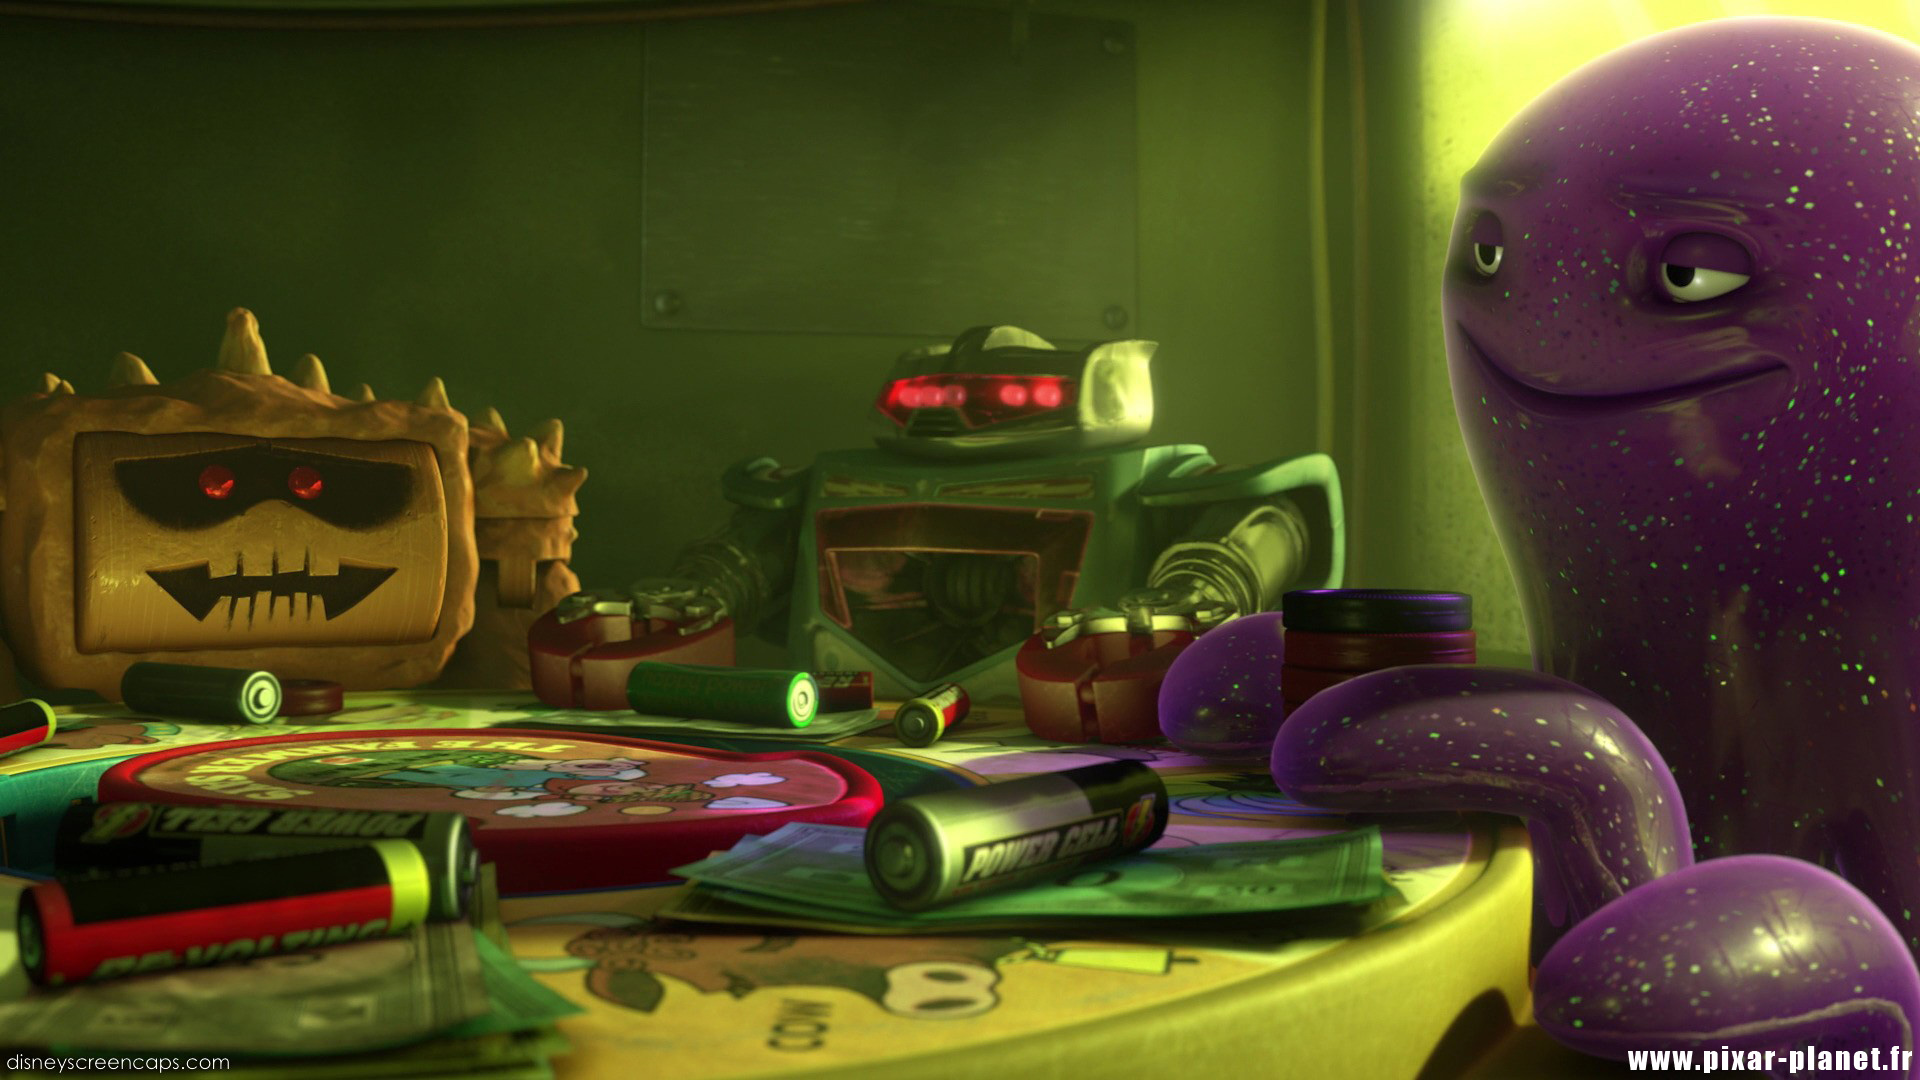 Pixar Planet Disney toy story 3